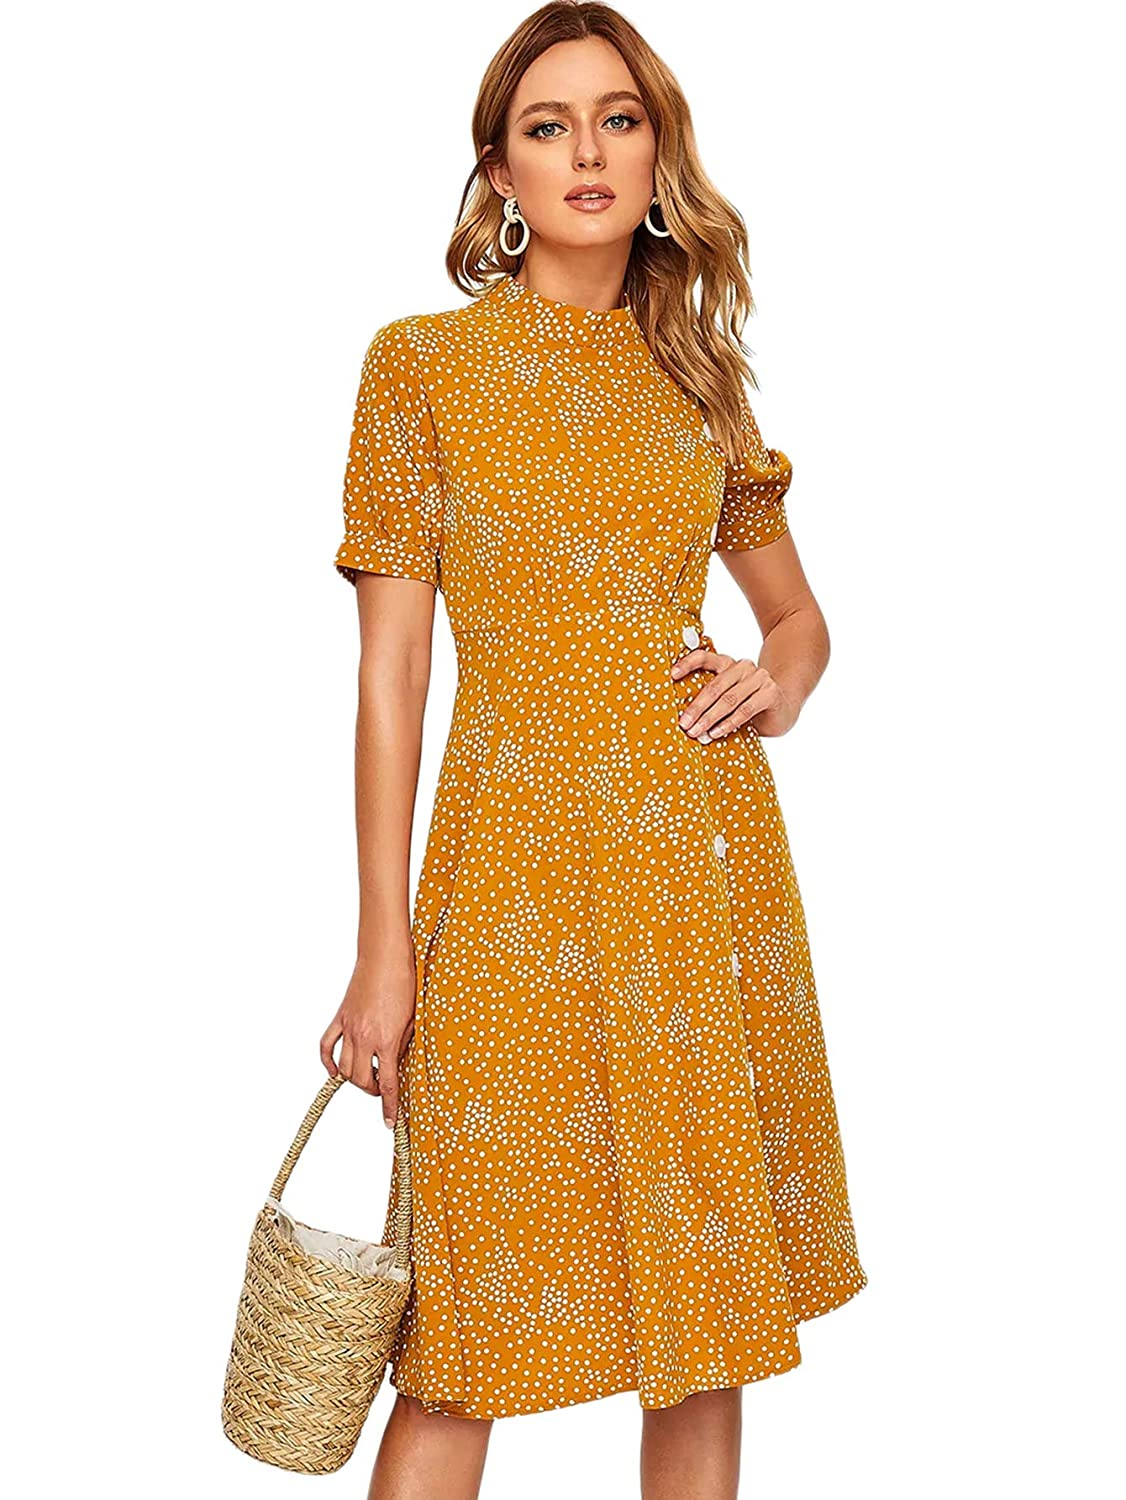 1940s Dresses | 40s Dress, Swing Dress SheIn Womens Casual Short Sleeve Polka Dot Button A Line Flare Midi Swing Dress $23.99 AT vintagedancer.com